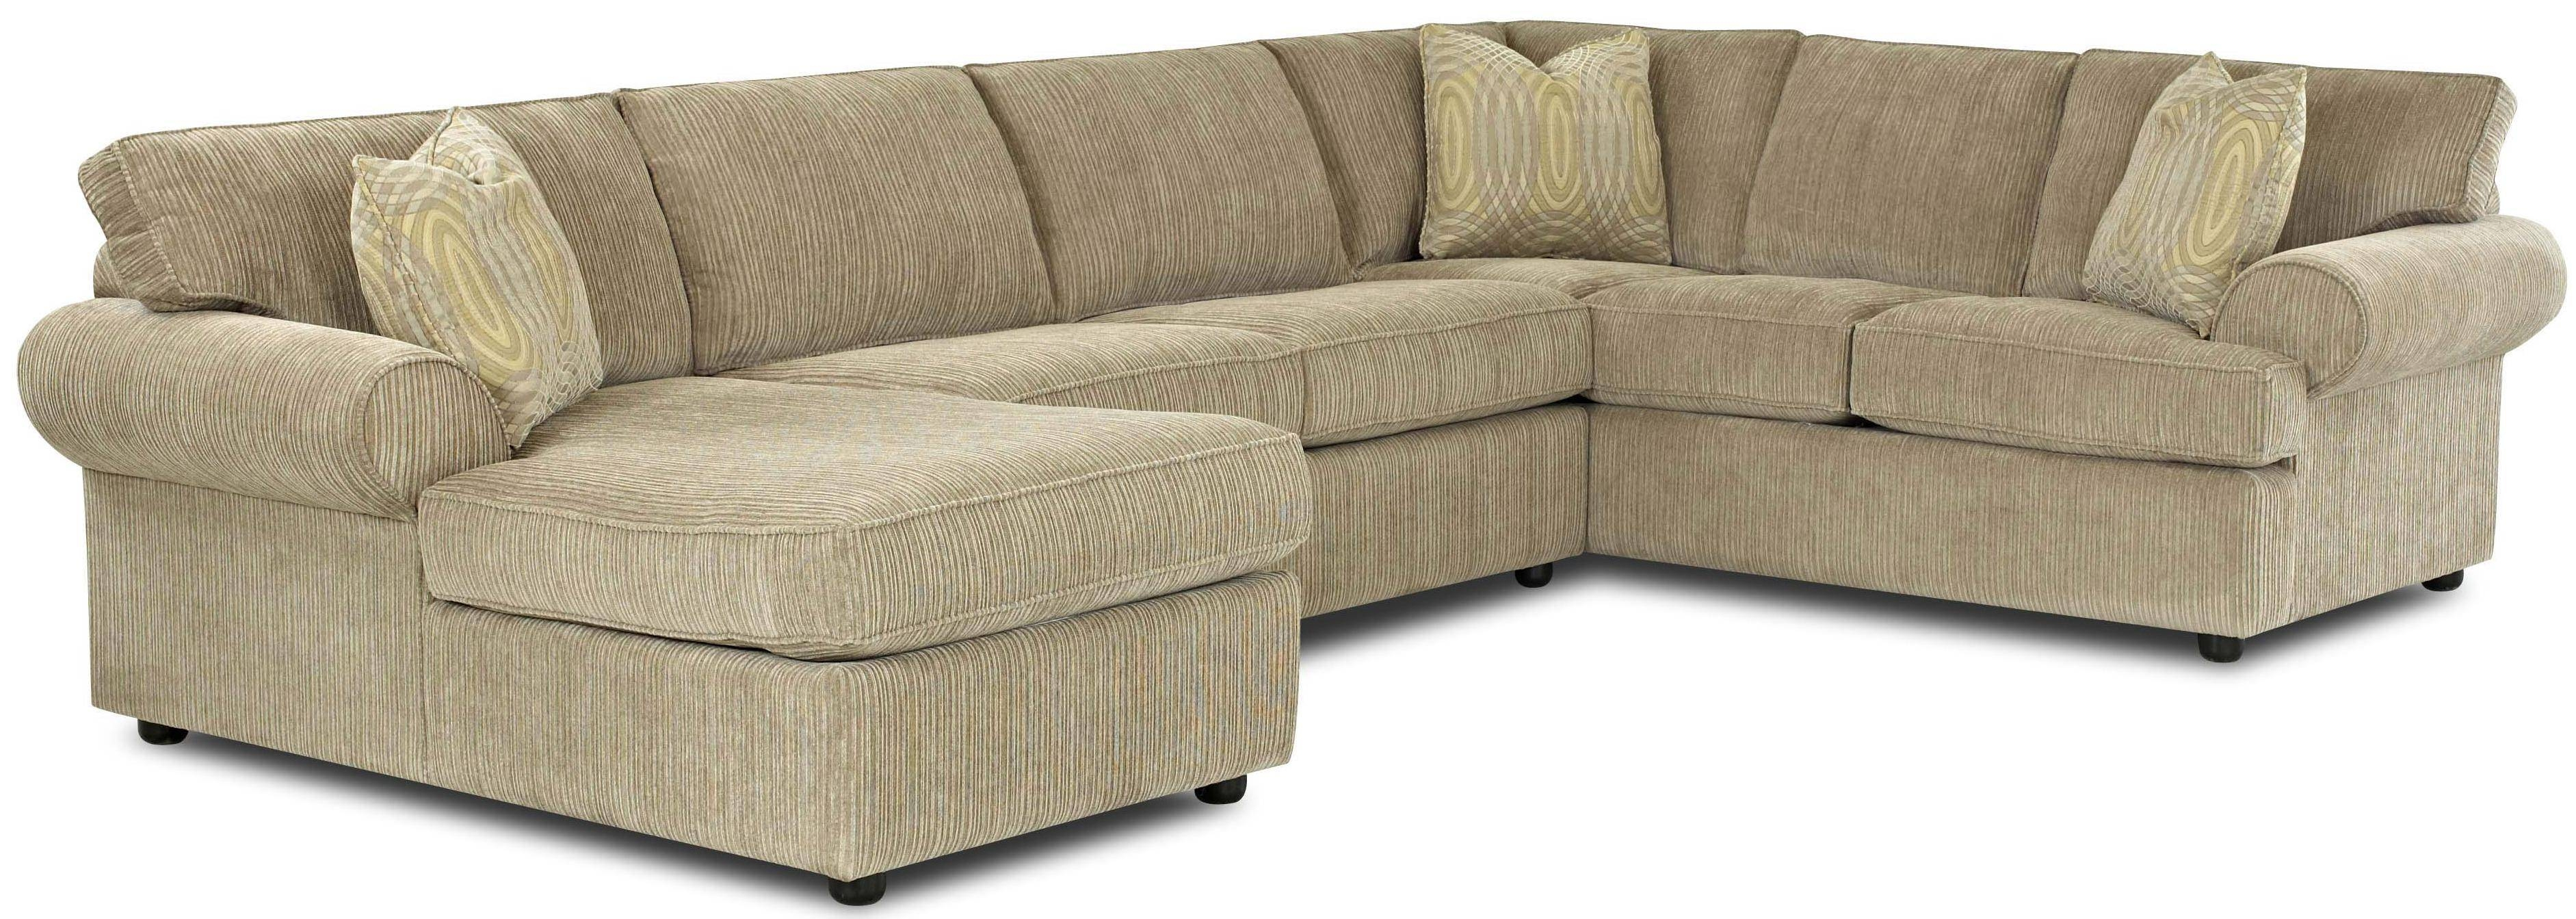 Sectional Sleeper Sofas On Sale - Tourdecarroll with regard to Broyhill Sectional Sleeper Sofas (Image 14 of 15)